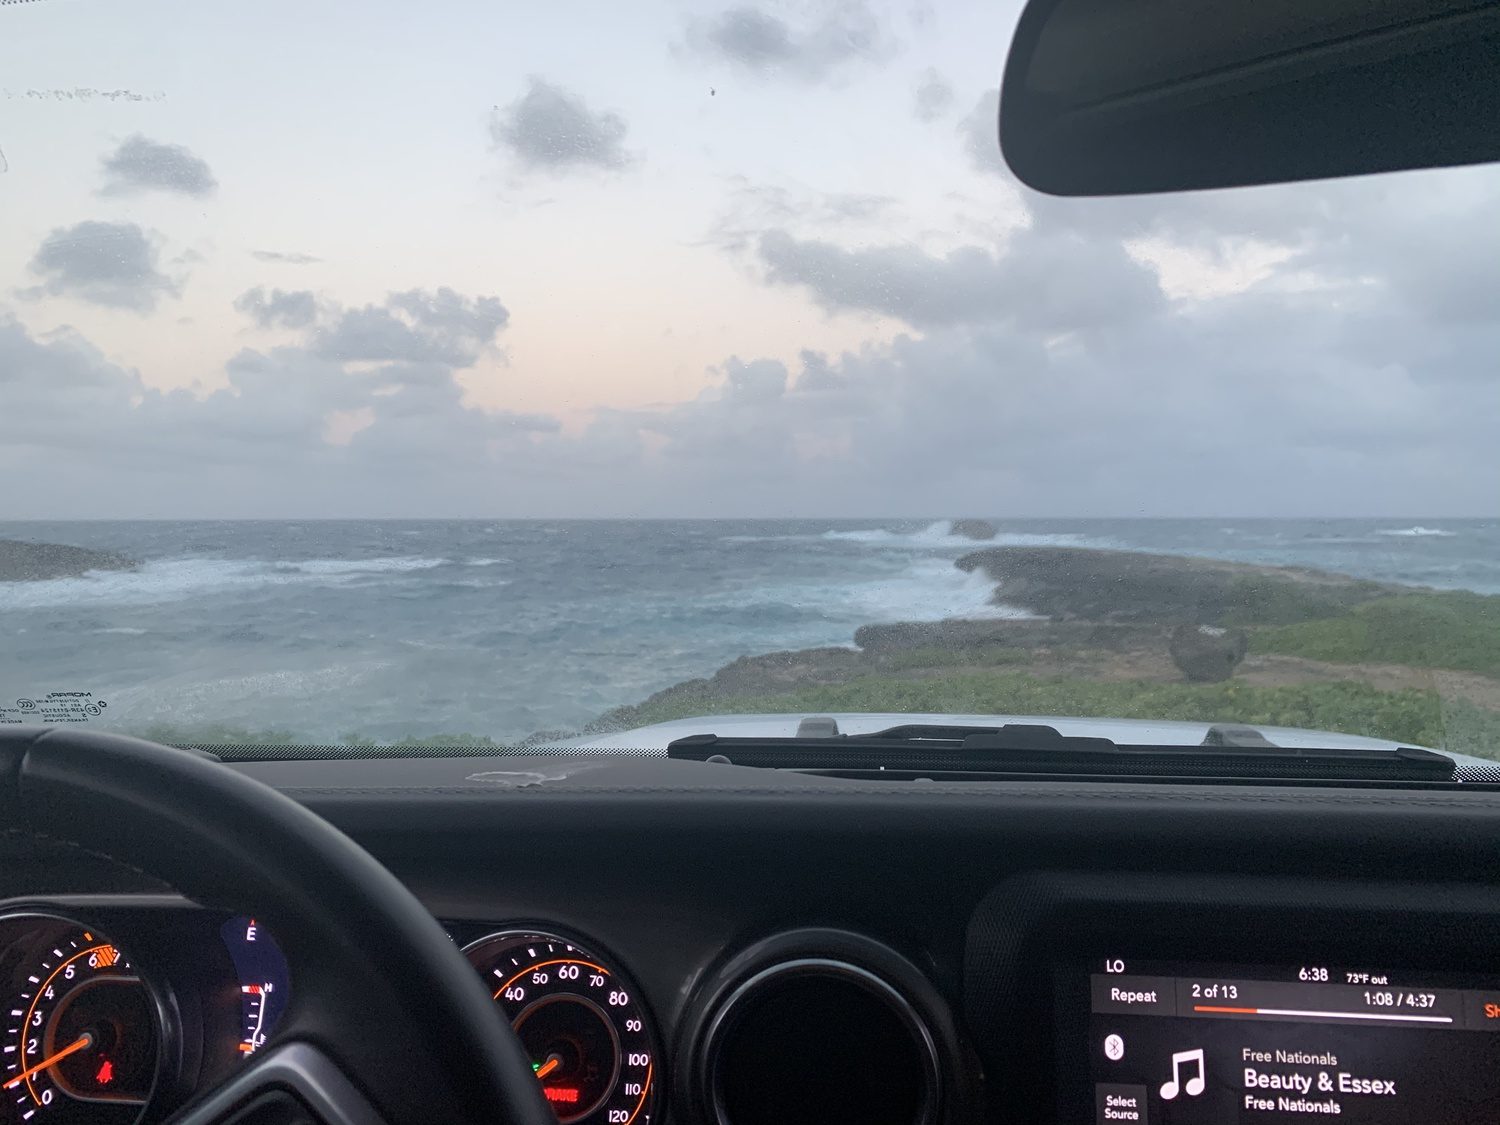 A view from the car in Oahu, Hawaii.